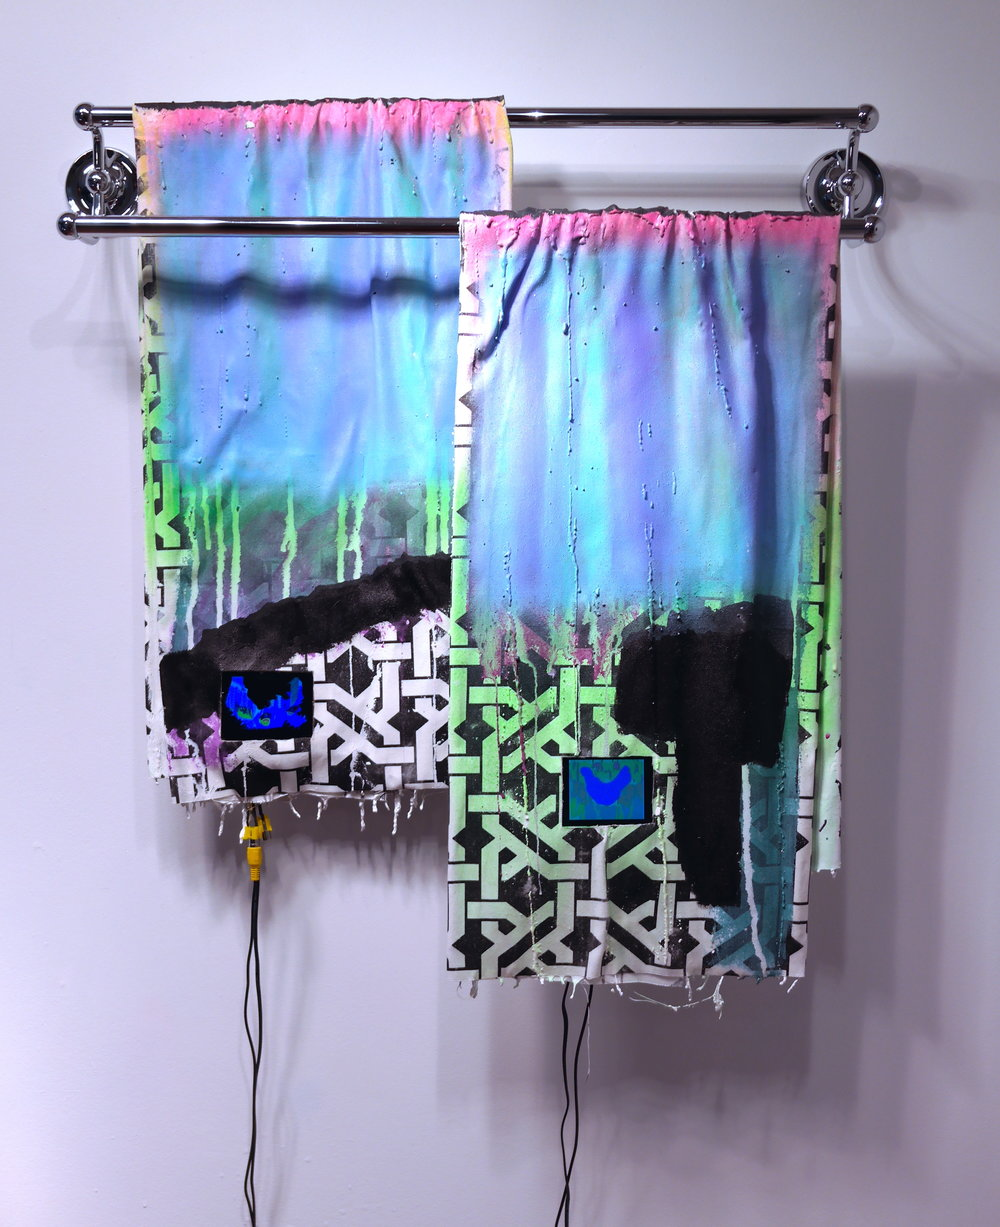 "+Arousal -Delight, 2015, 29""x25"" acrylic, plaster, metal, monitors, animation, media players on fabric."